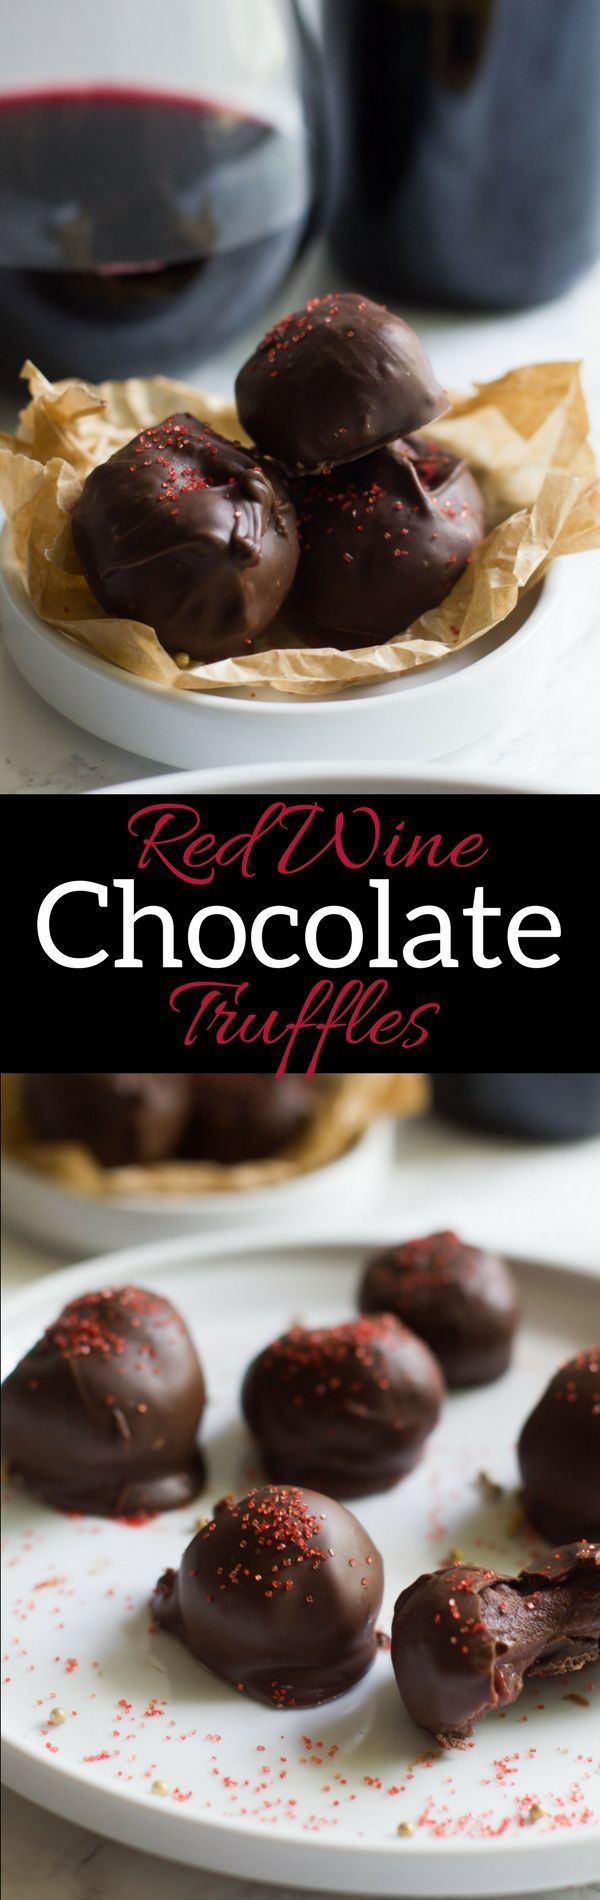 Red Wine Chocolate Truffles are the perfect elegant end to an evening. They are sweet and fruity with a complex red wine flavor.